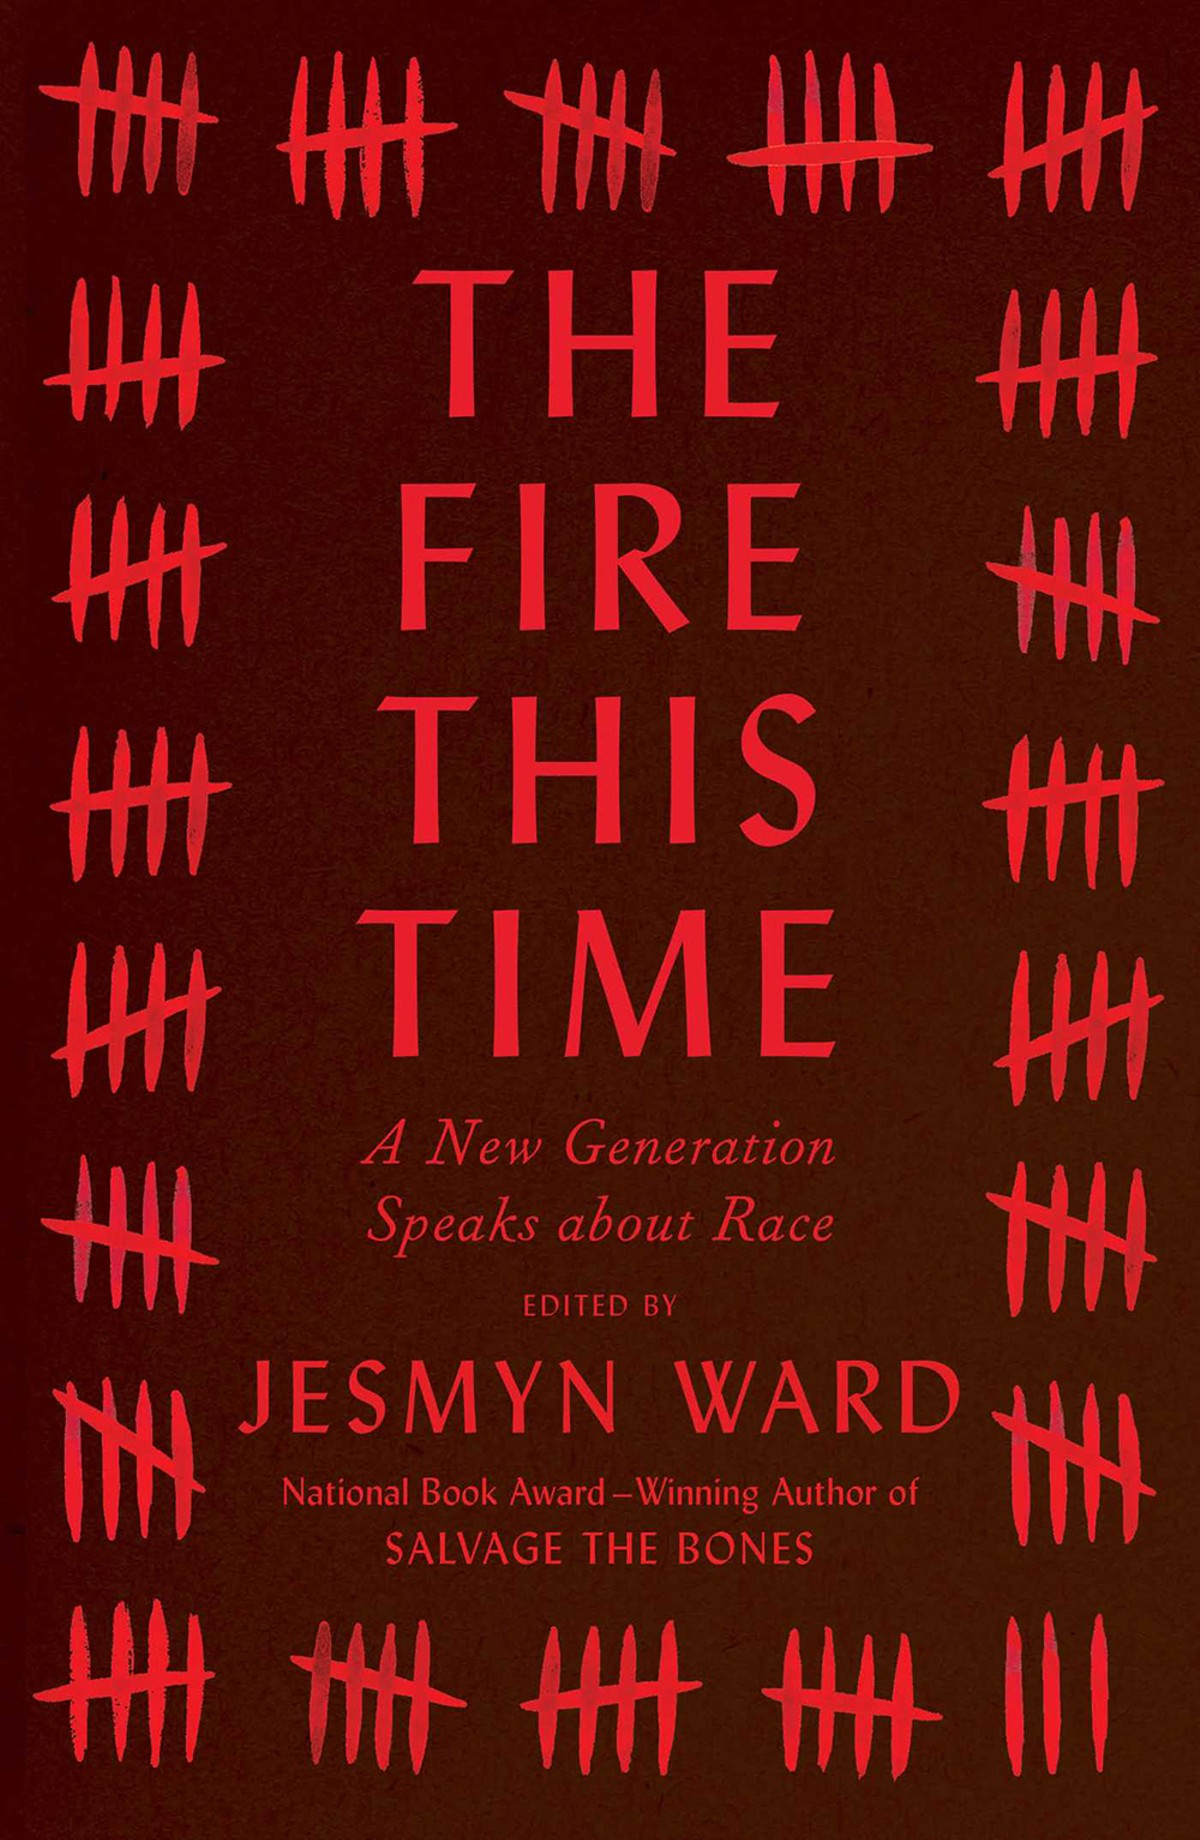 The Fire This Time edited by Jesmyn Ward